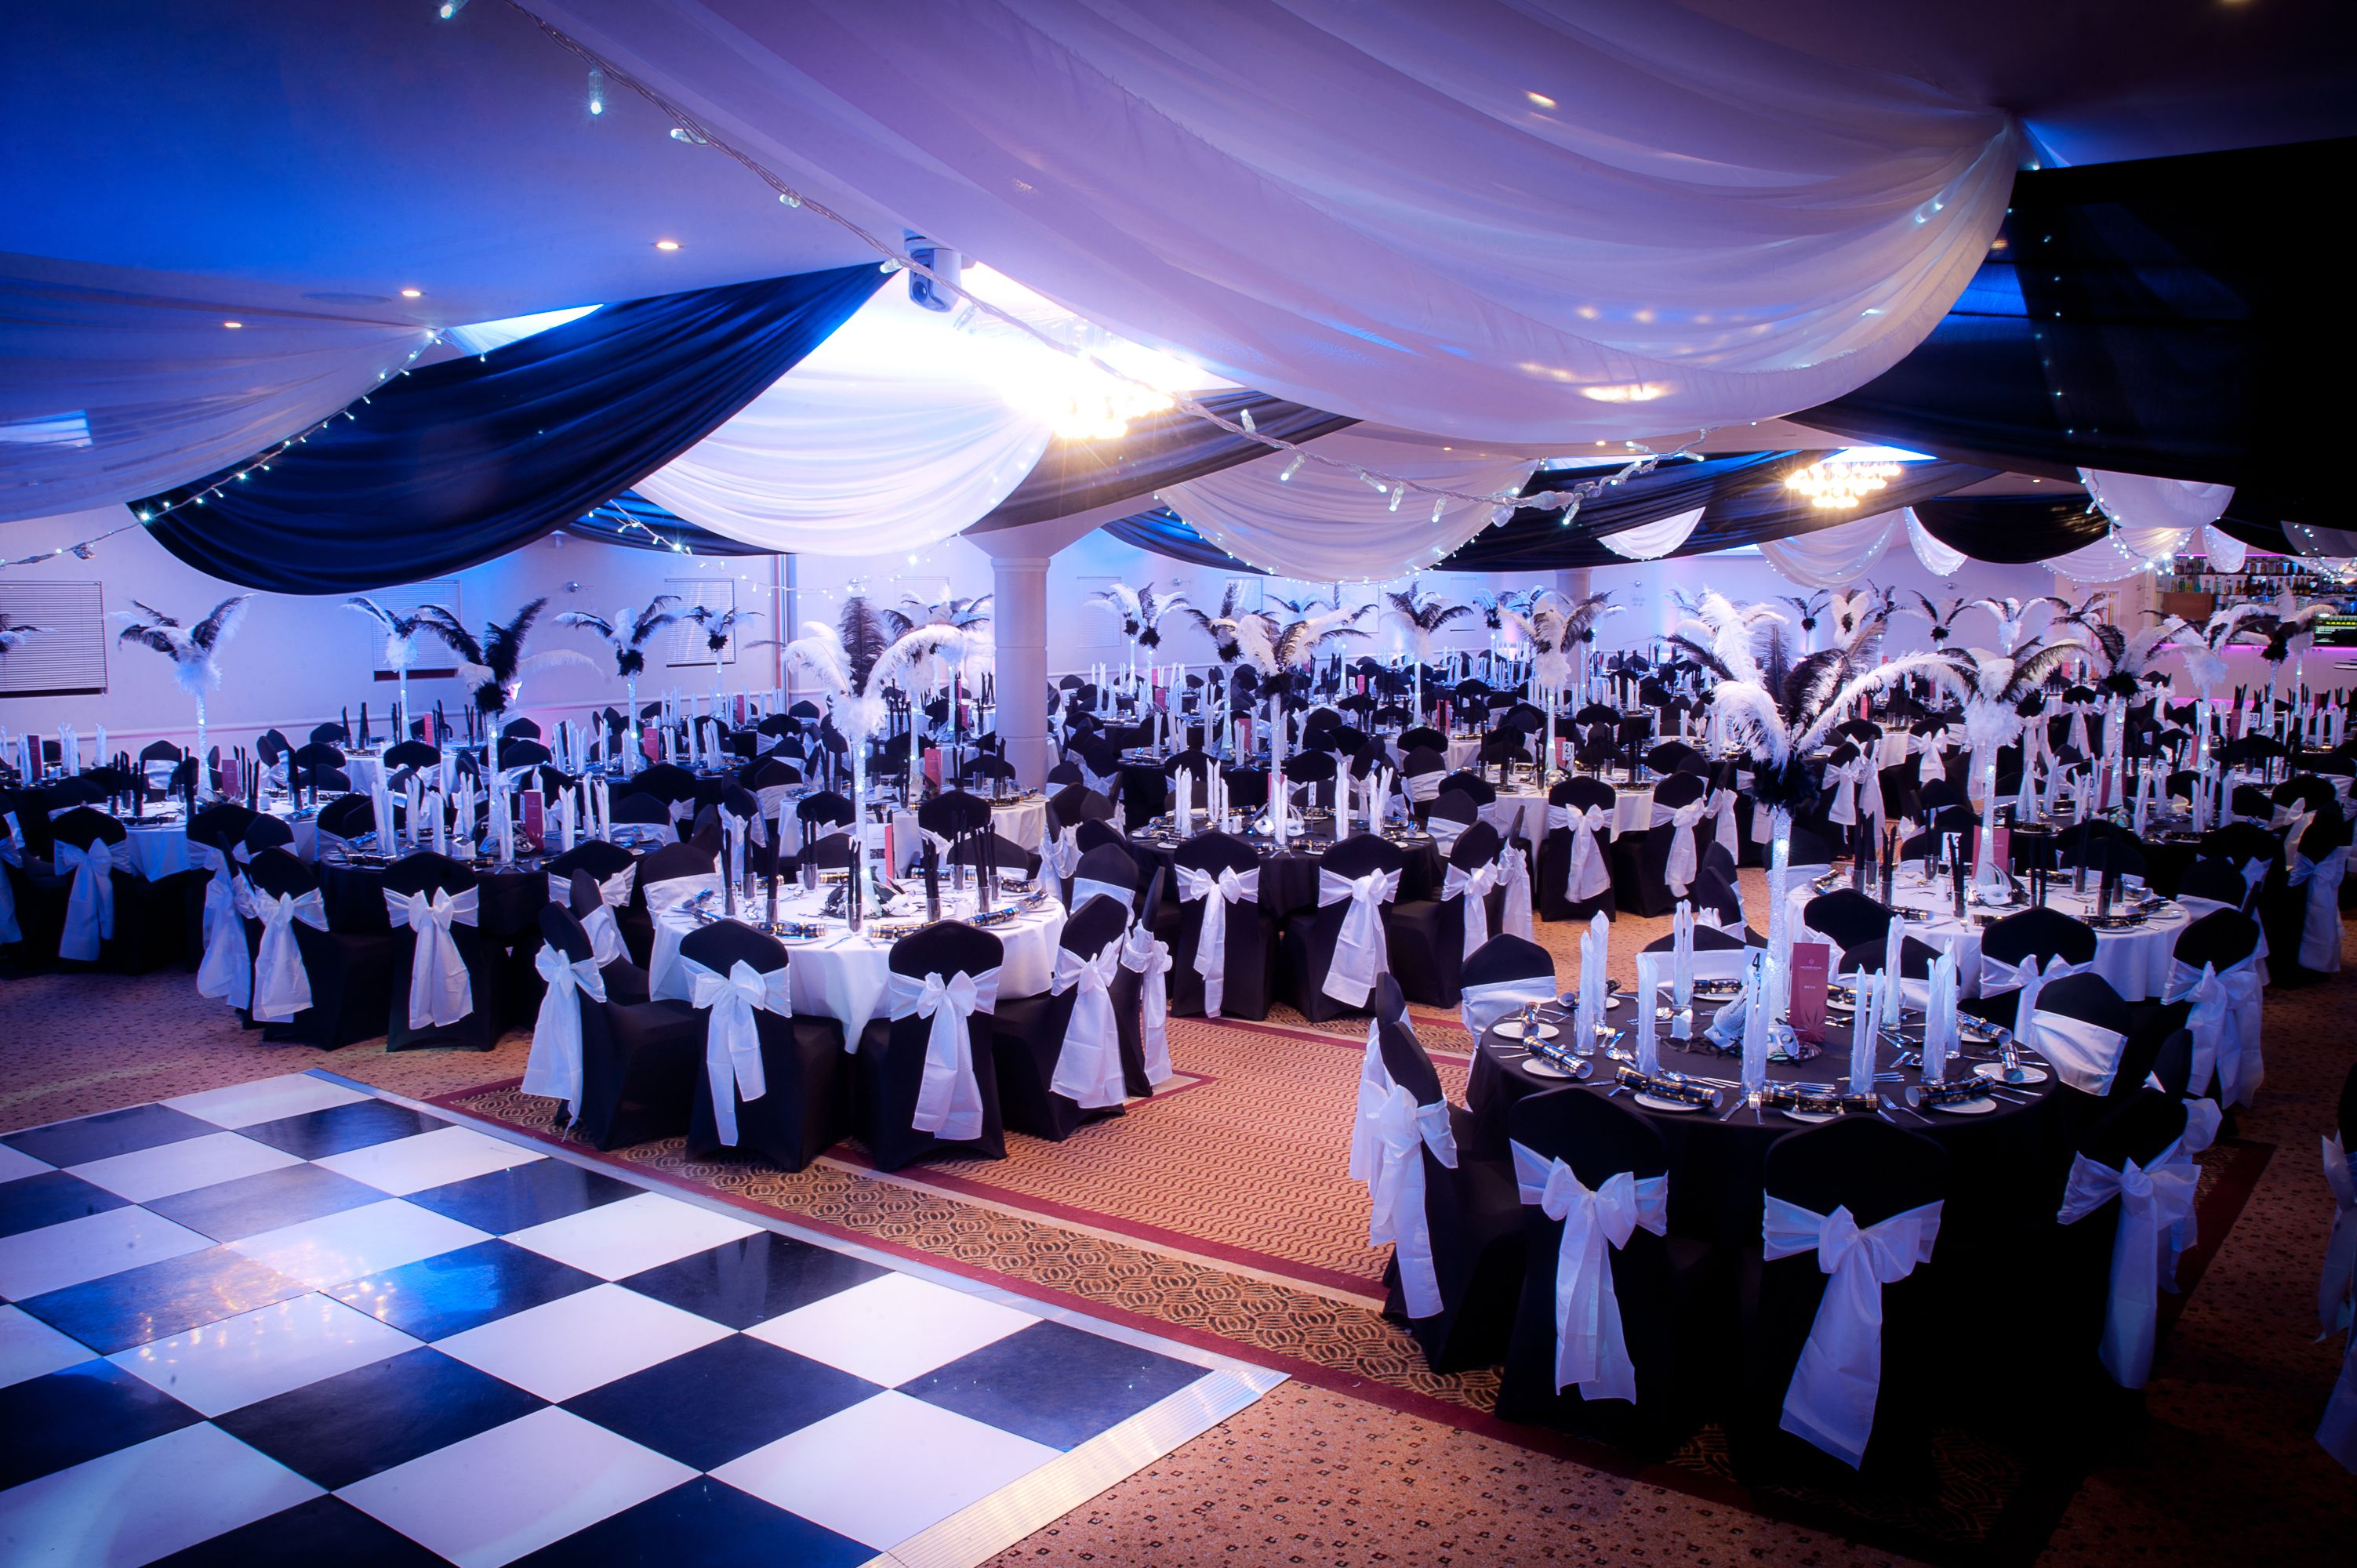 Black White Masquerade Ball At The Auction House Photo By Abraxasphotocouk Theming Theme Workscouk